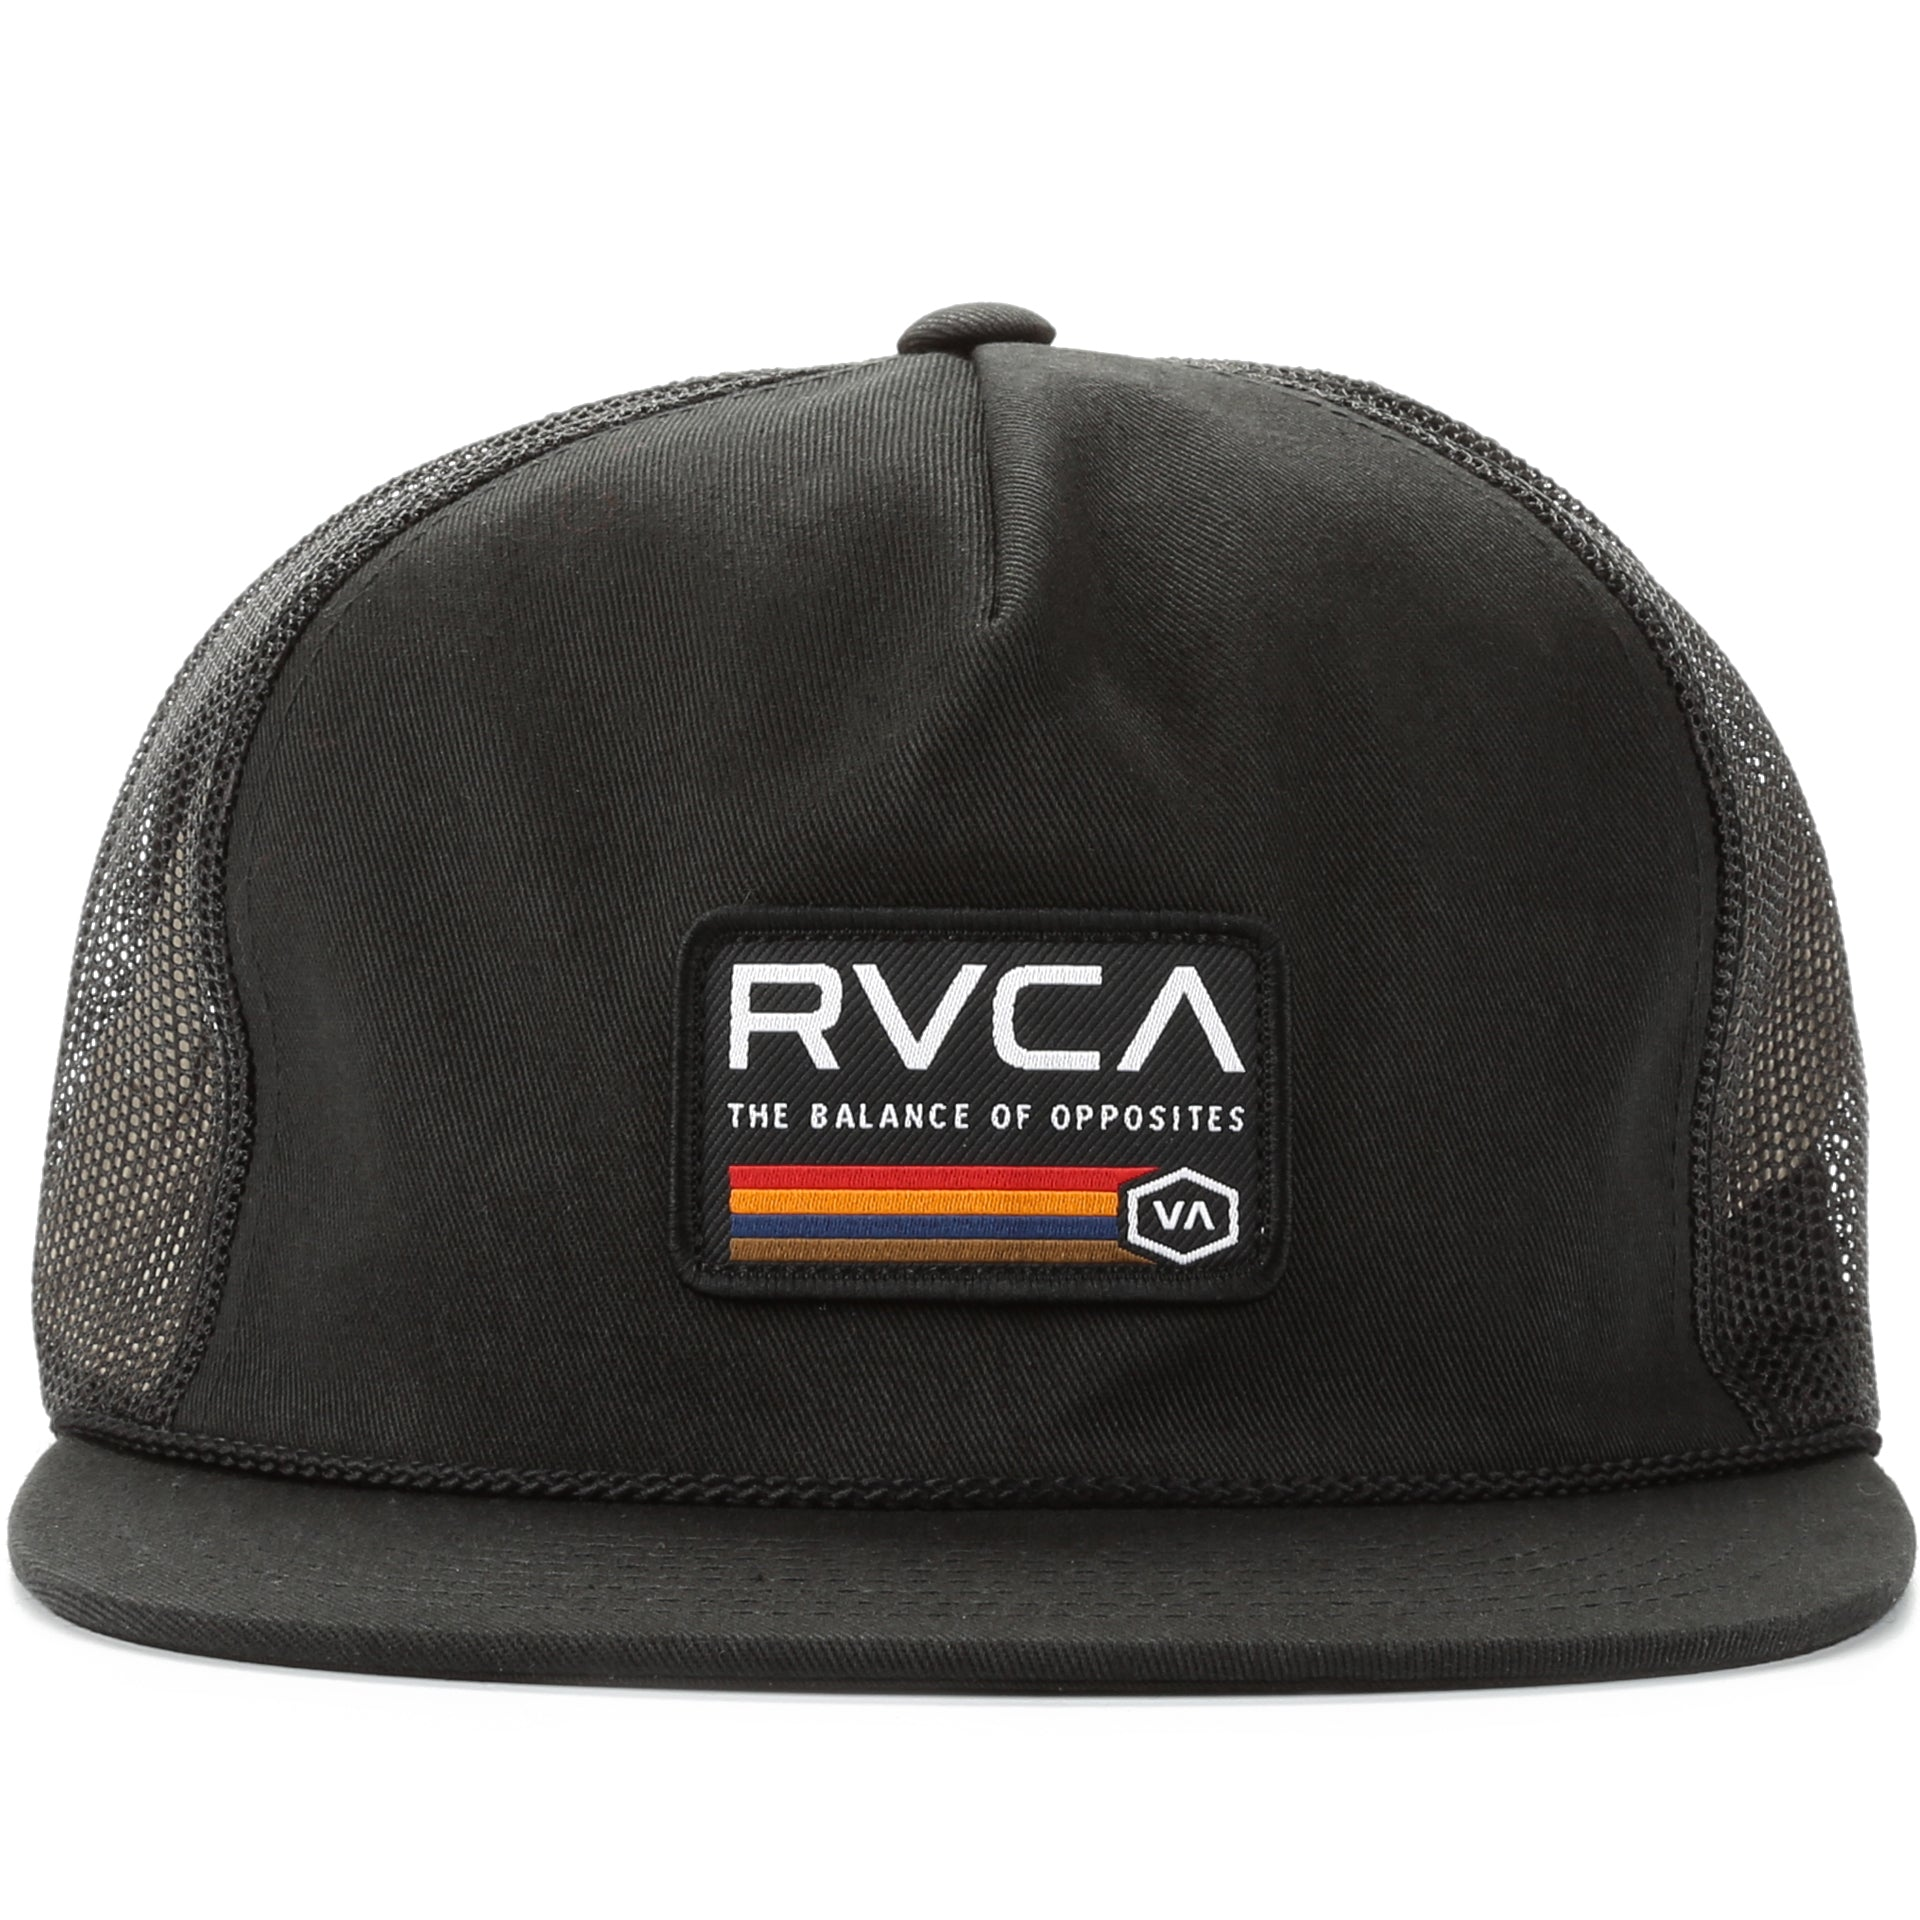 77775a6278 RVCA Mechanic II Trucker Hat - Black - New Star